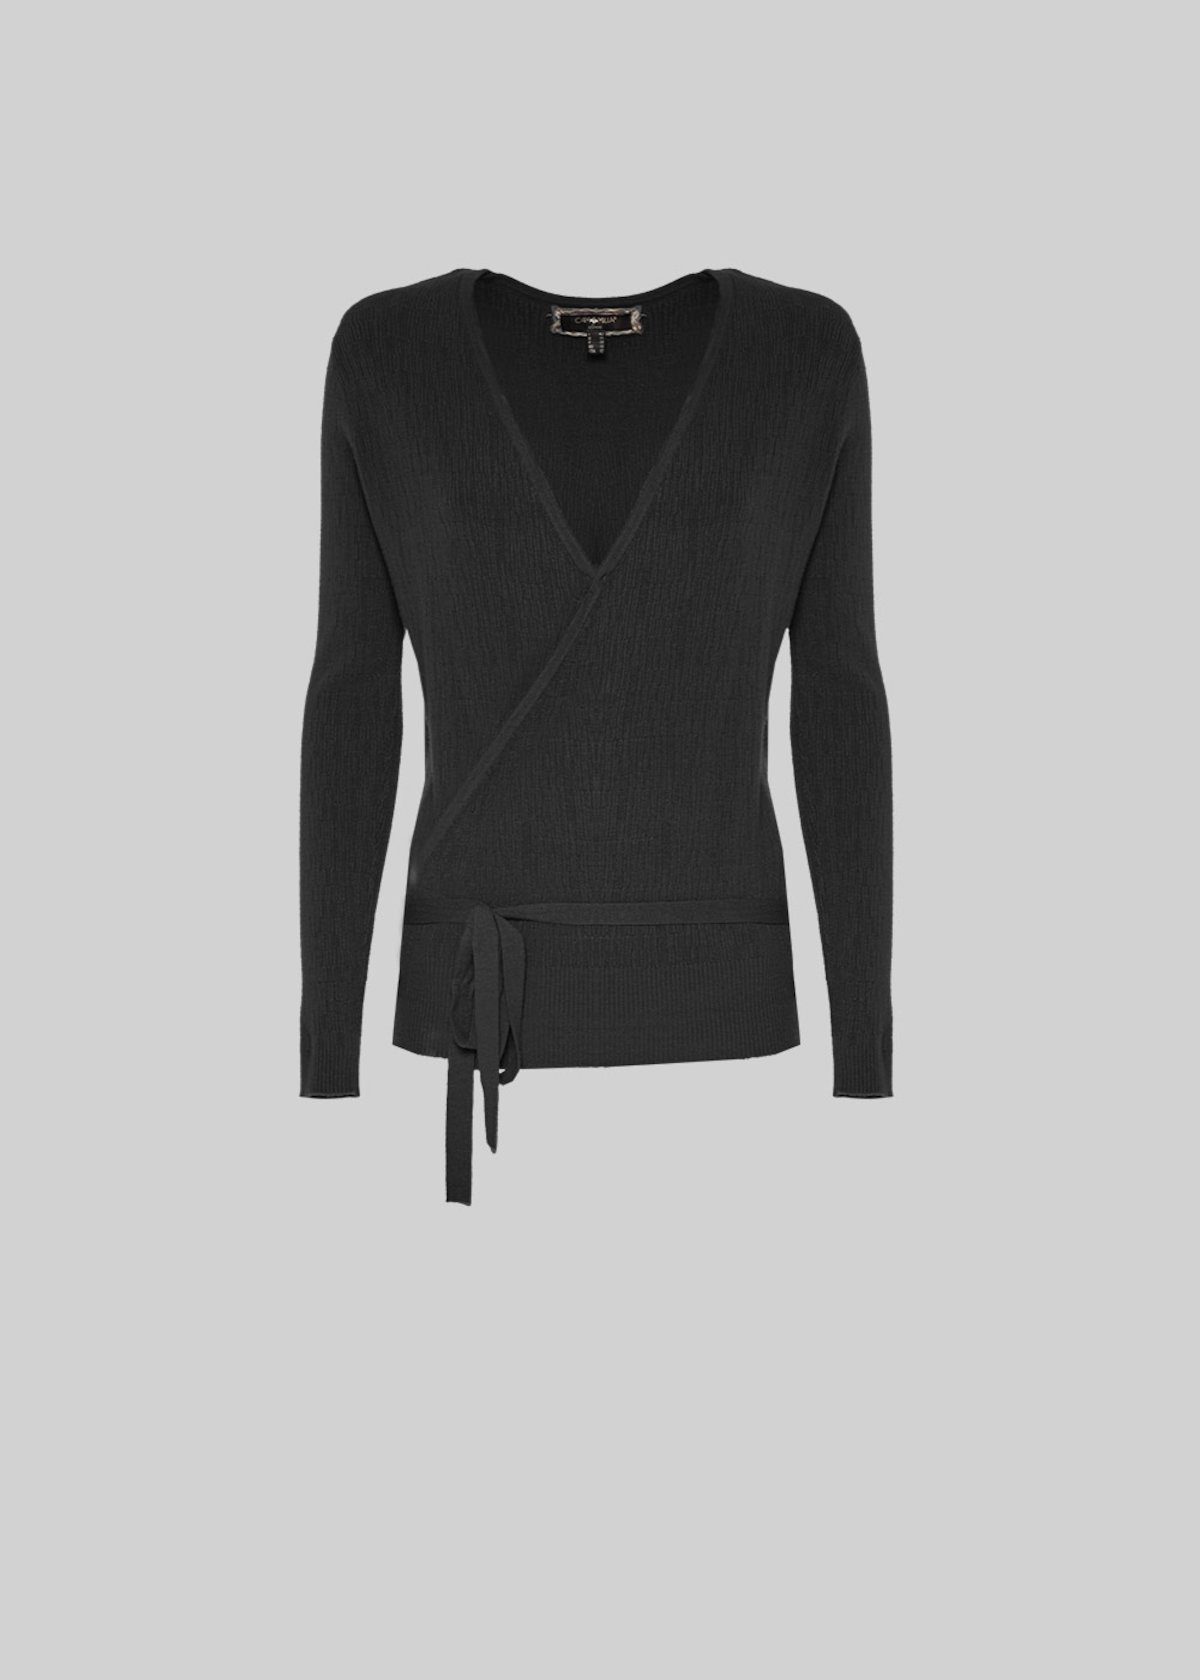 Crayon cardigan with crossover closure - Black - Woman - Category image